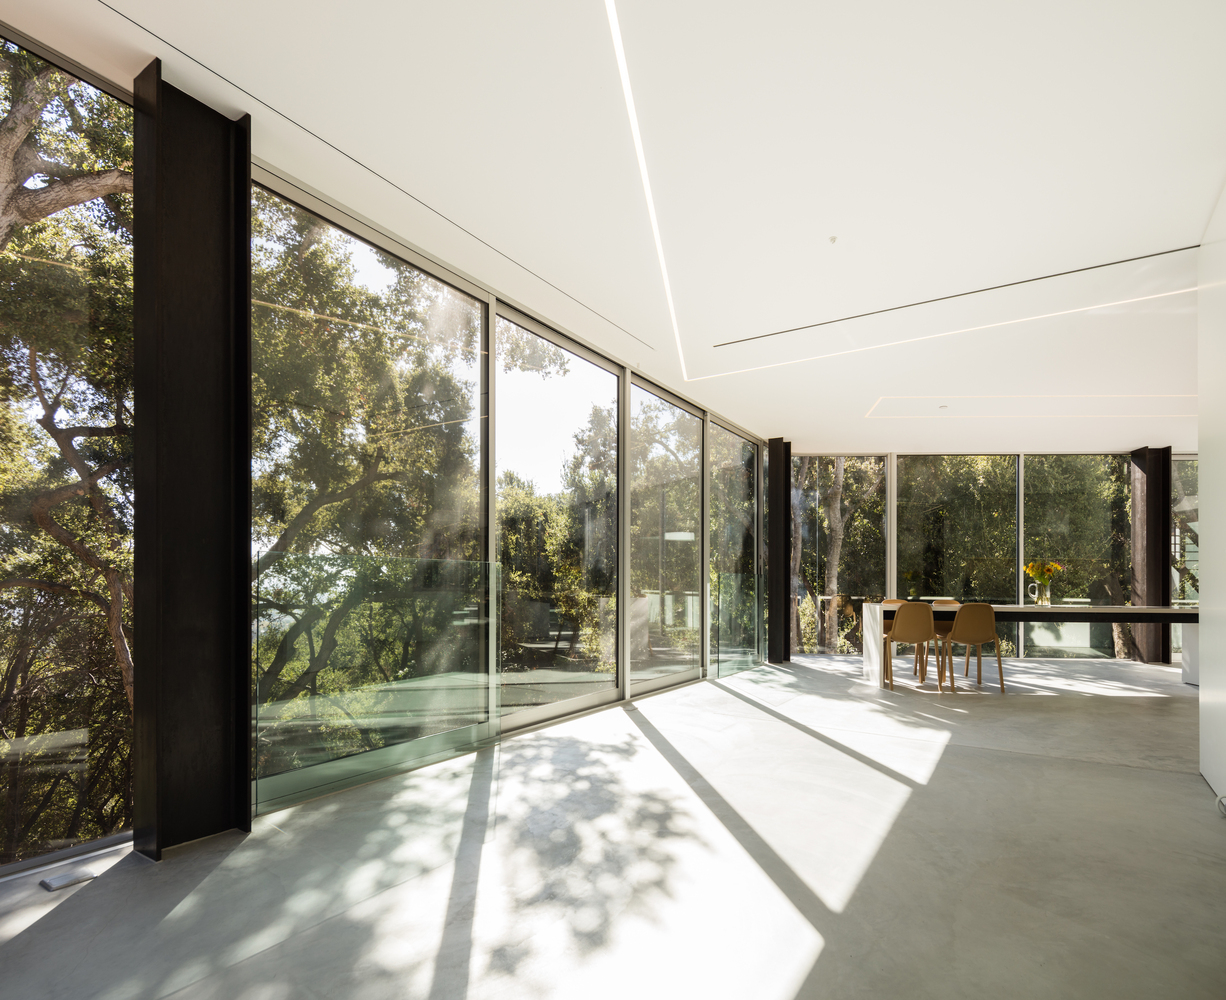 17 bradley steely  pam paul 38a copy. Casa para Pam y Paul, por Craig Steely Architecture.